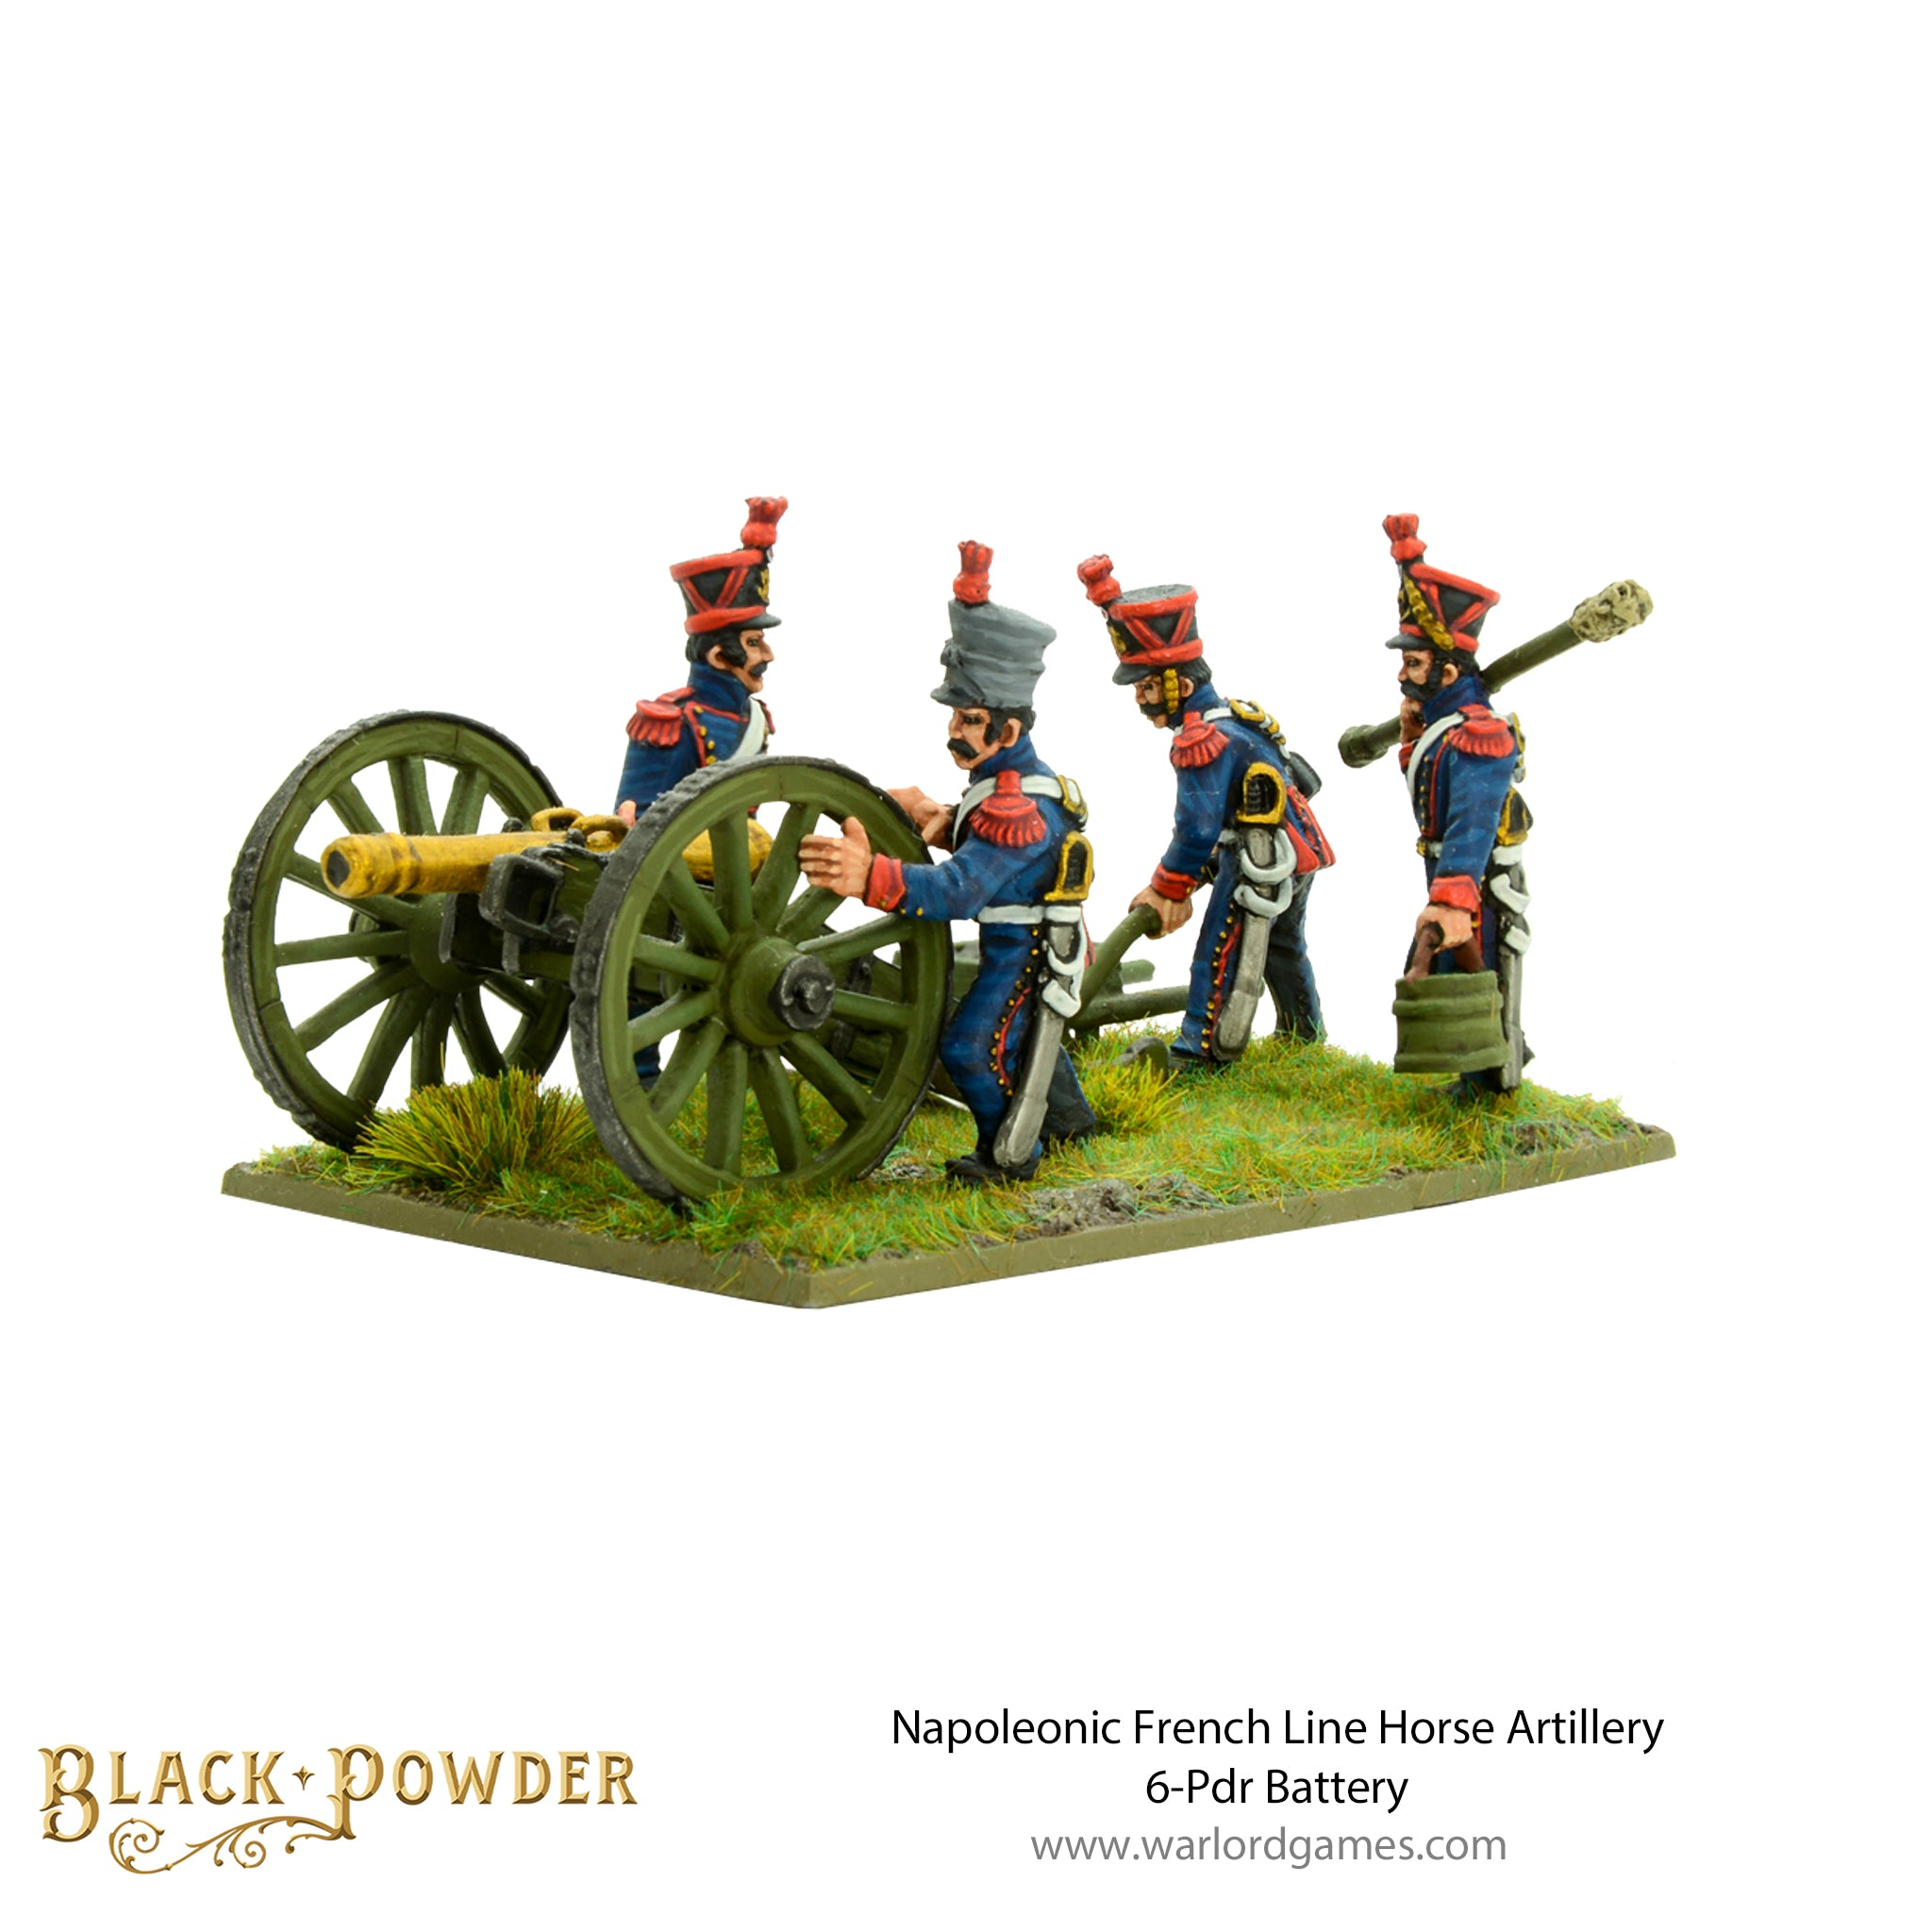 Napoleonic French Line Horse Artillery 6-Pdr Battery